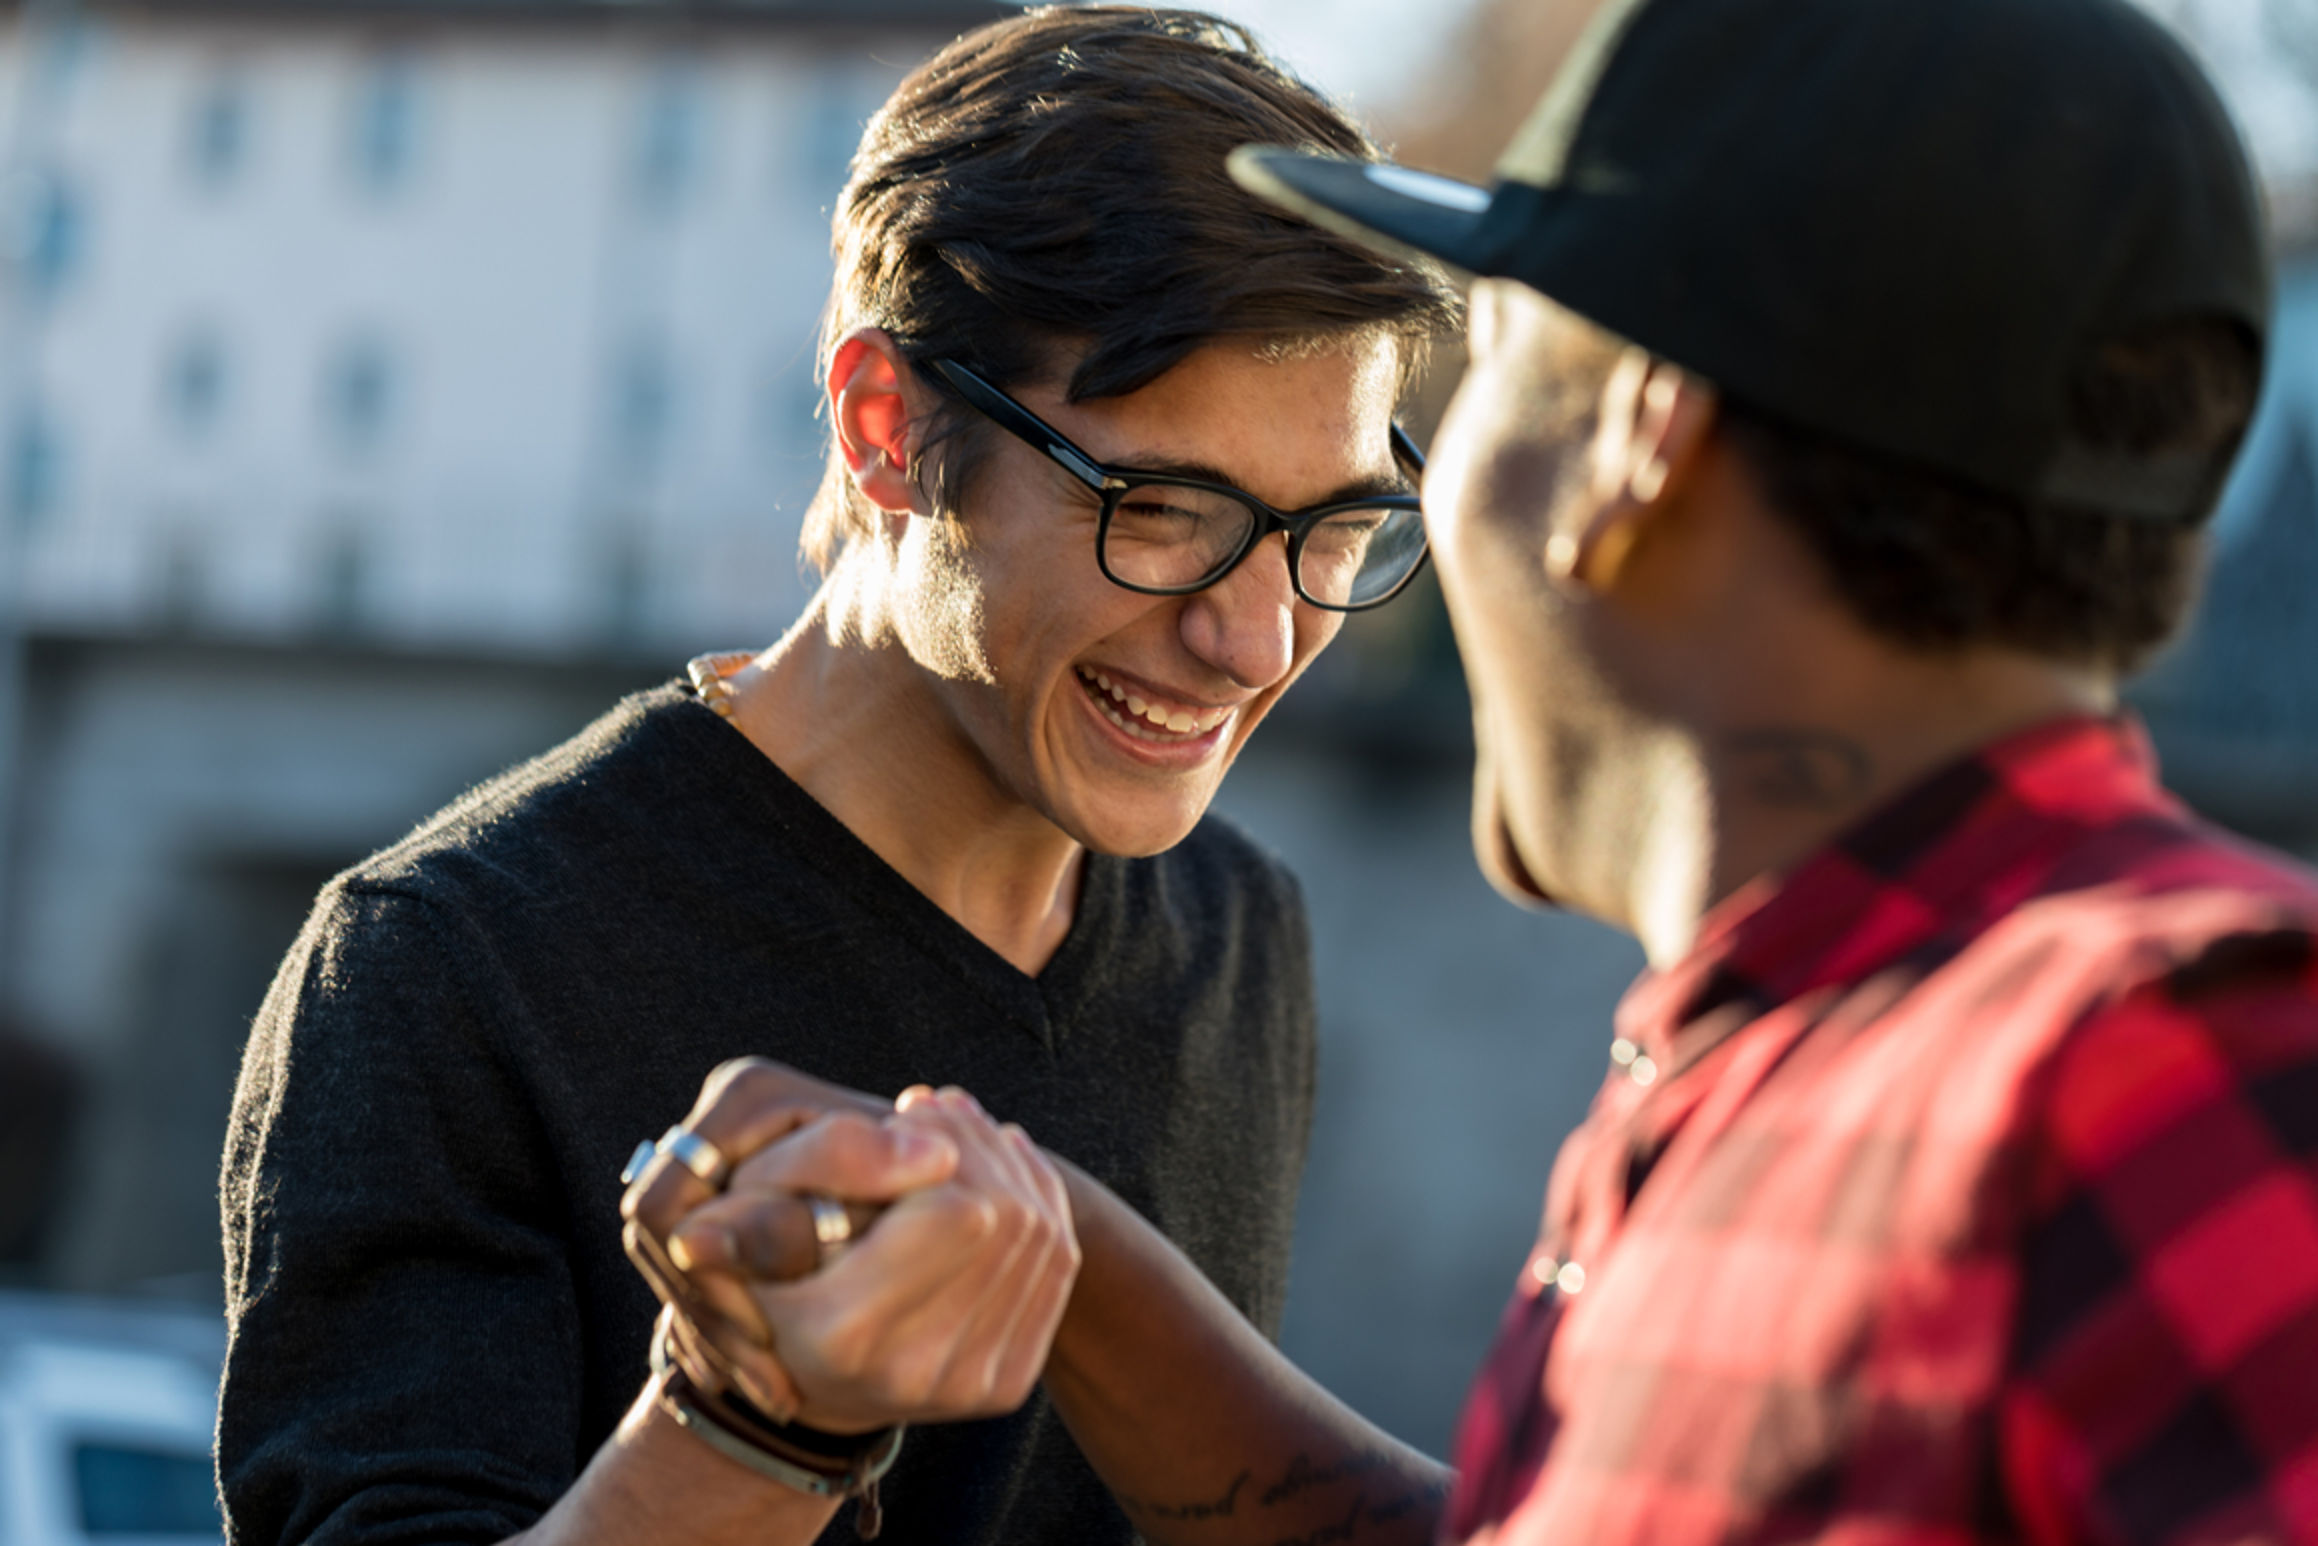 two guys greeting each other smiling, hands grasped